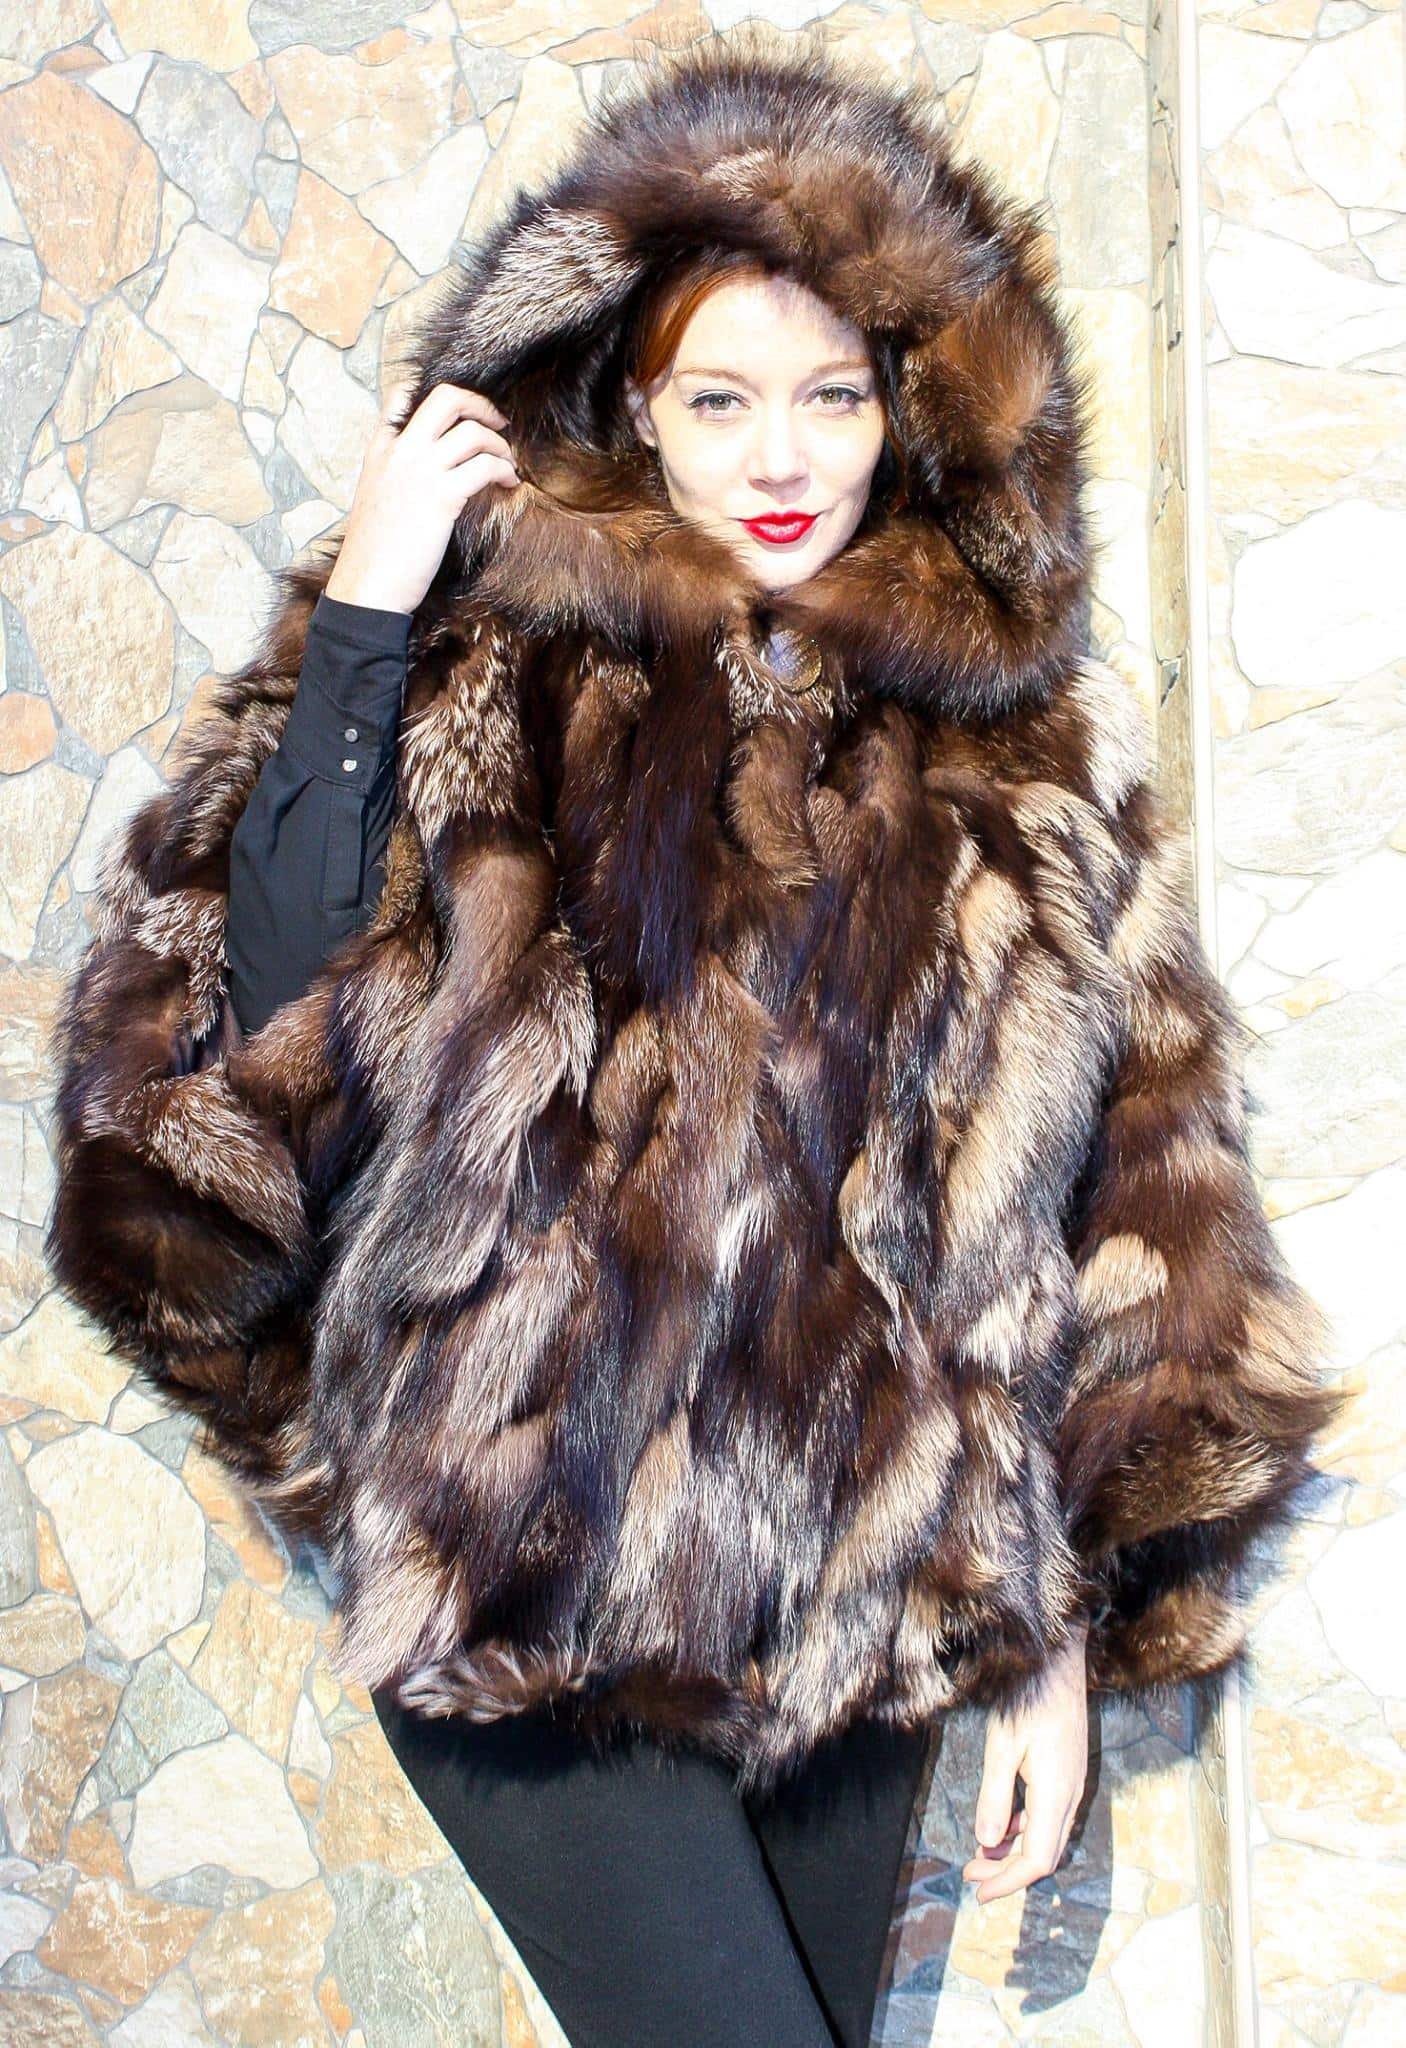 Animal Fur Coats: Much Warmer than Synthetic Fibers